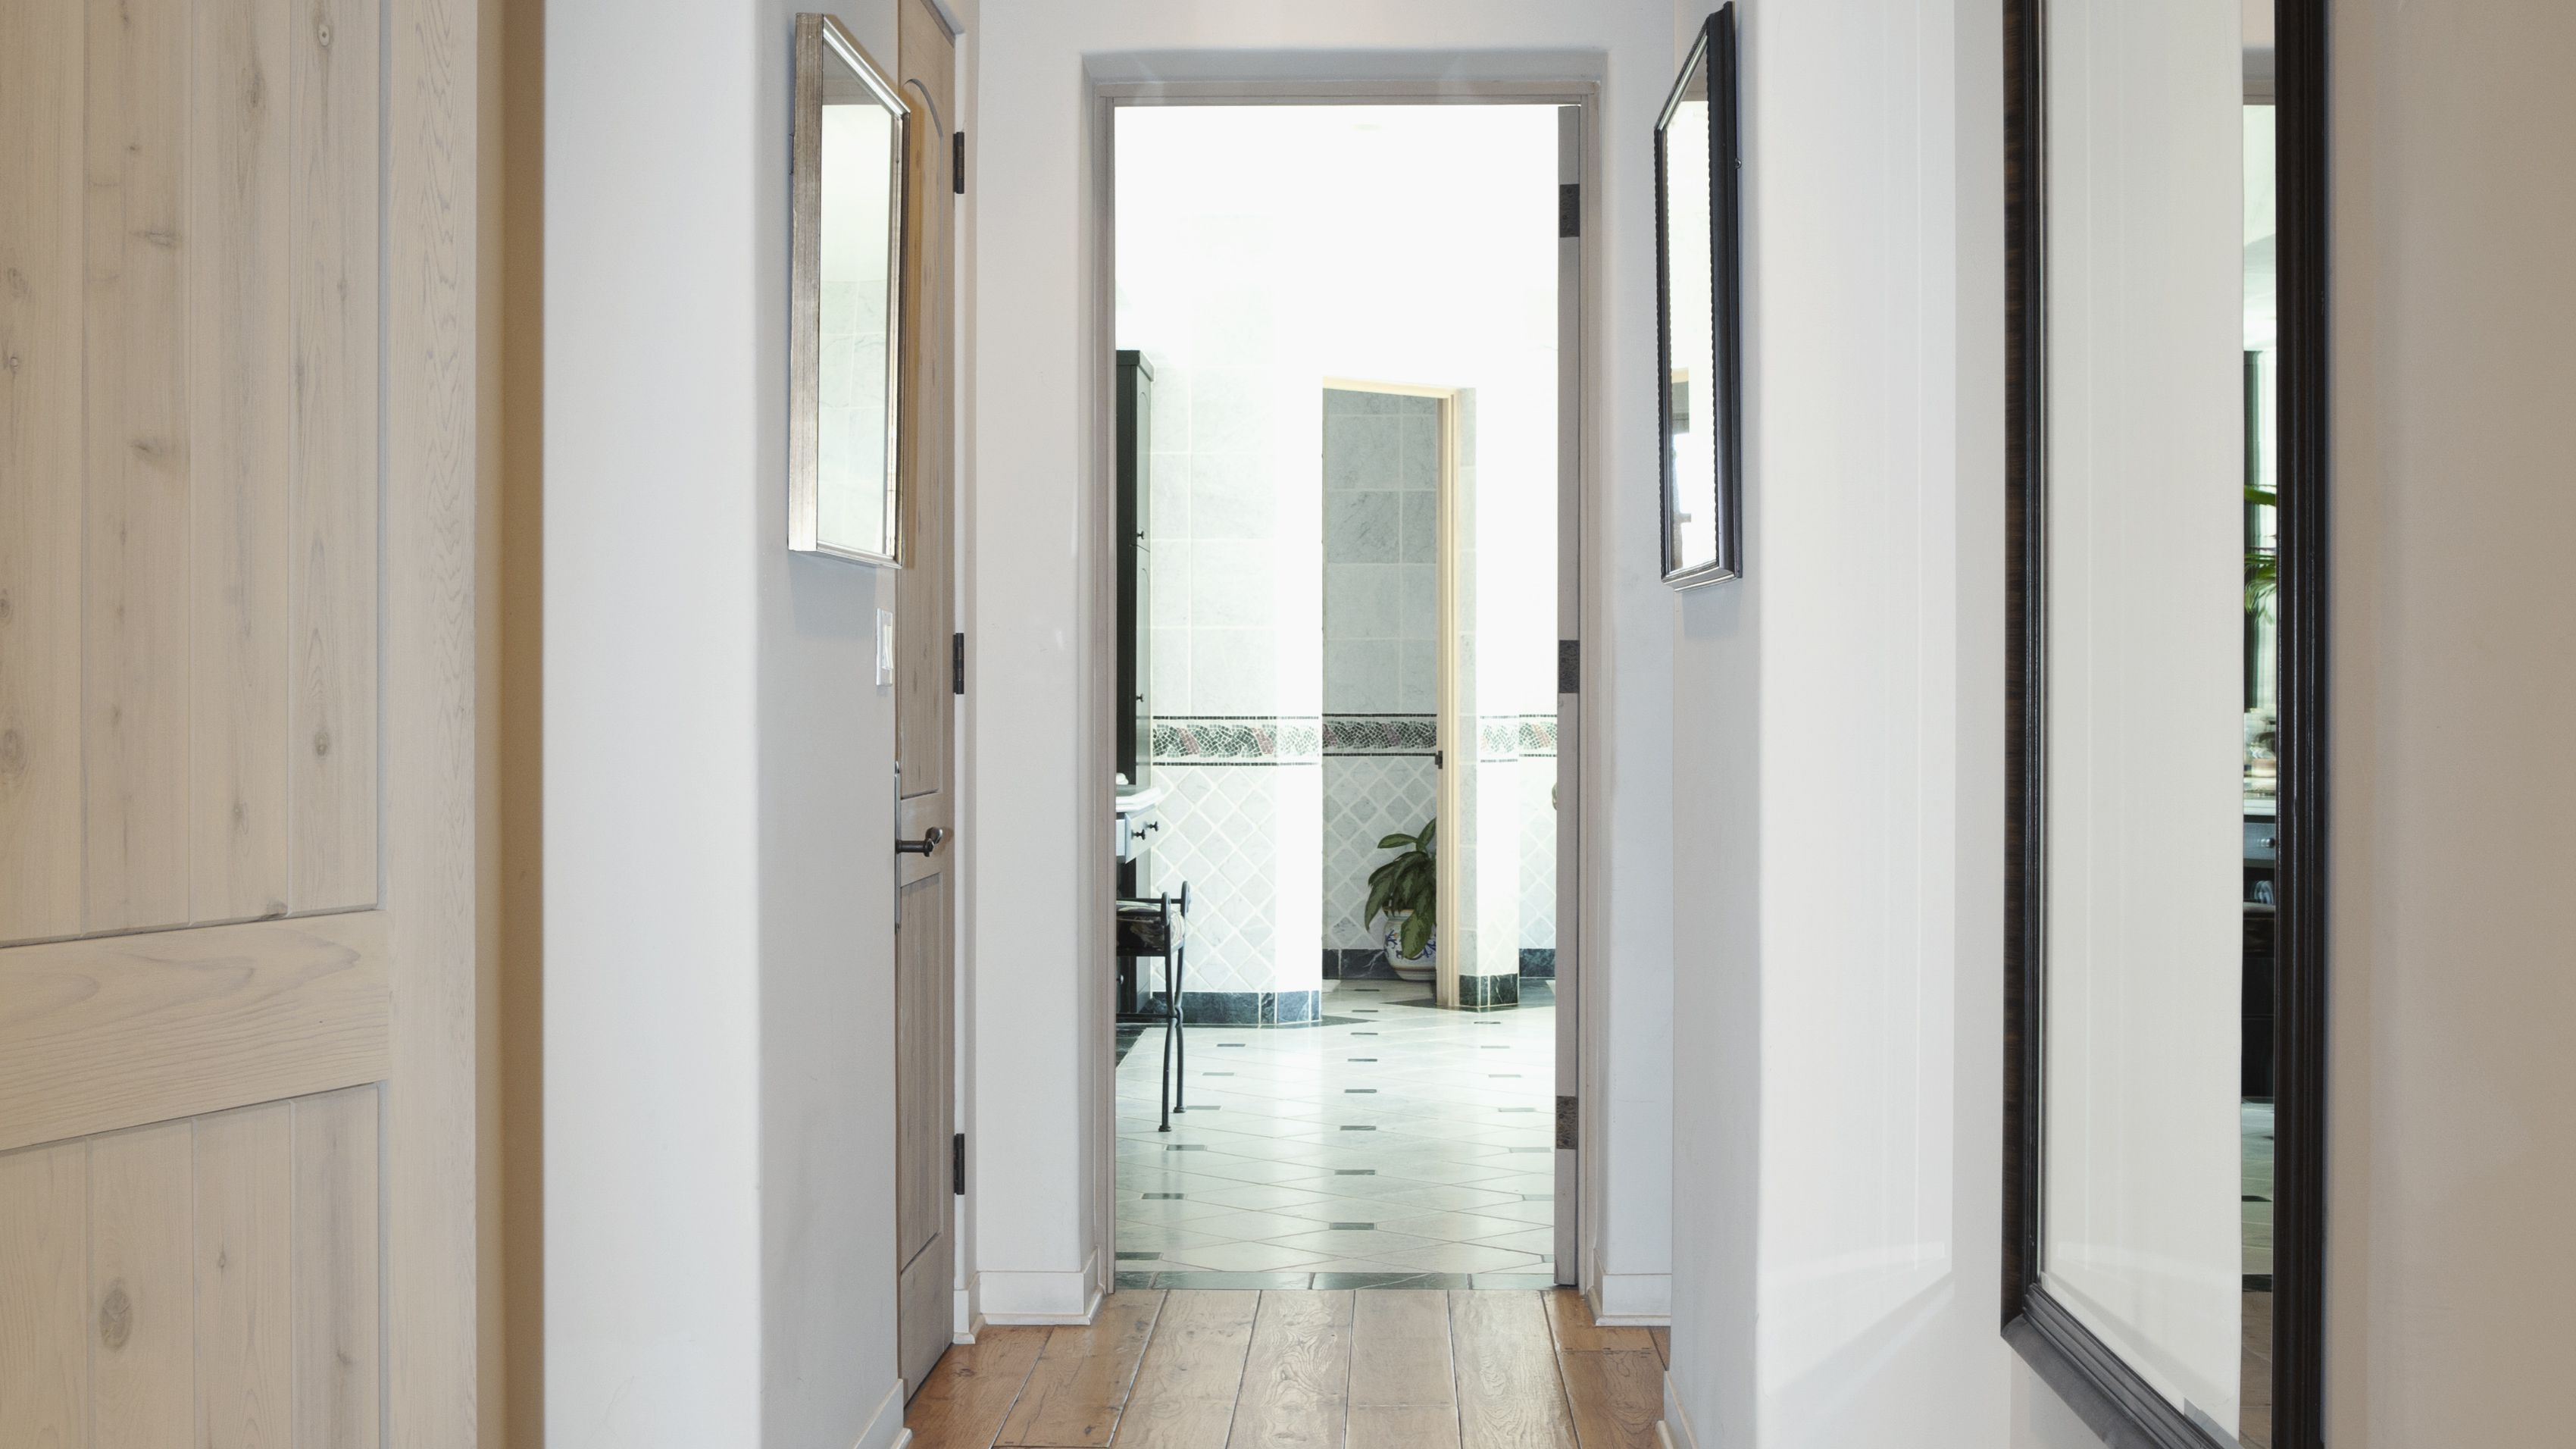 Feng Shui Tips For A Long Hallway